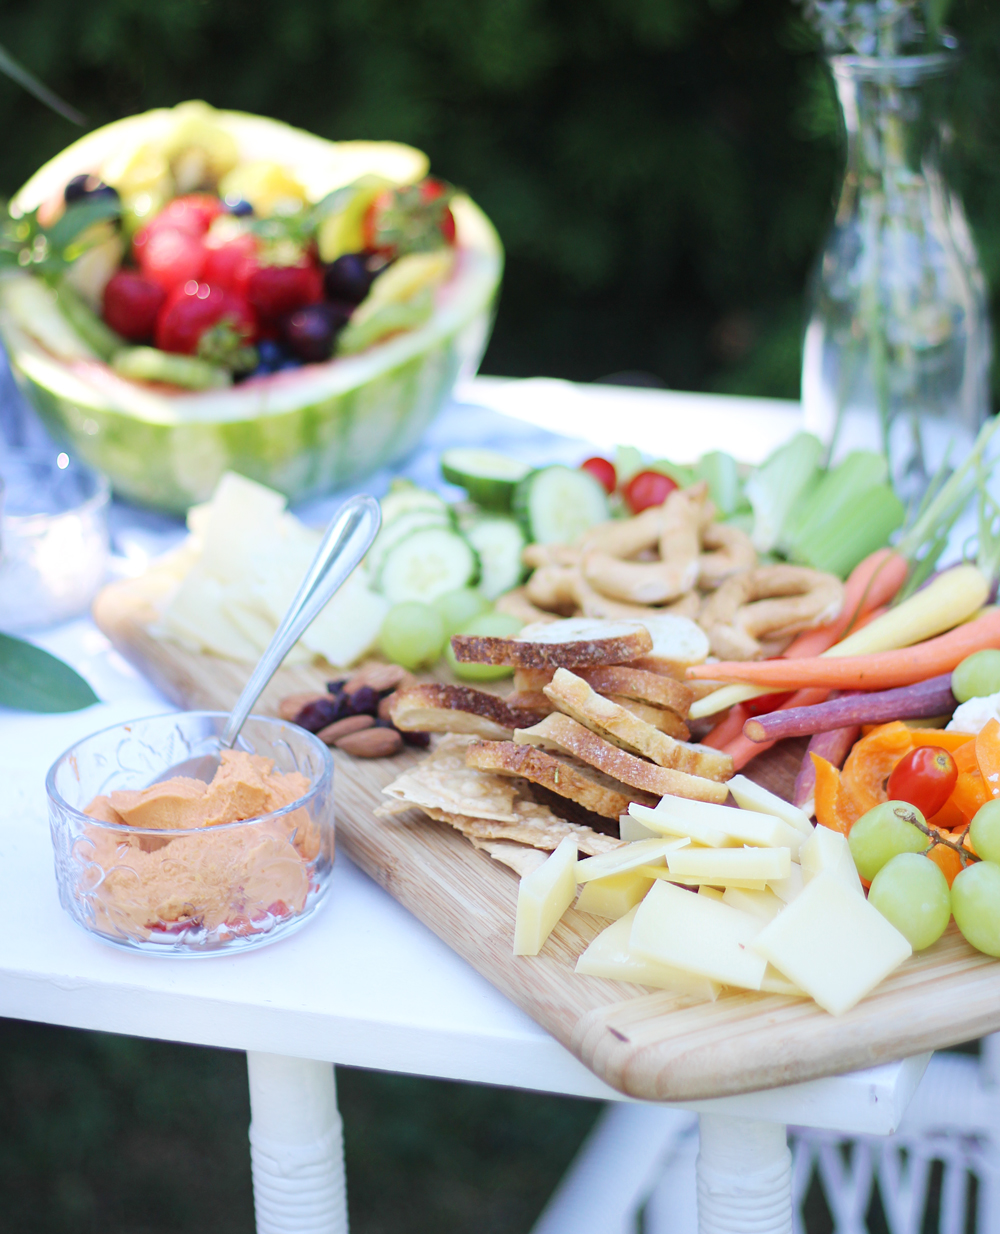 Summer Party Essentials - Healthy Snacks (cheese platter, vegetables, dips, fruit)